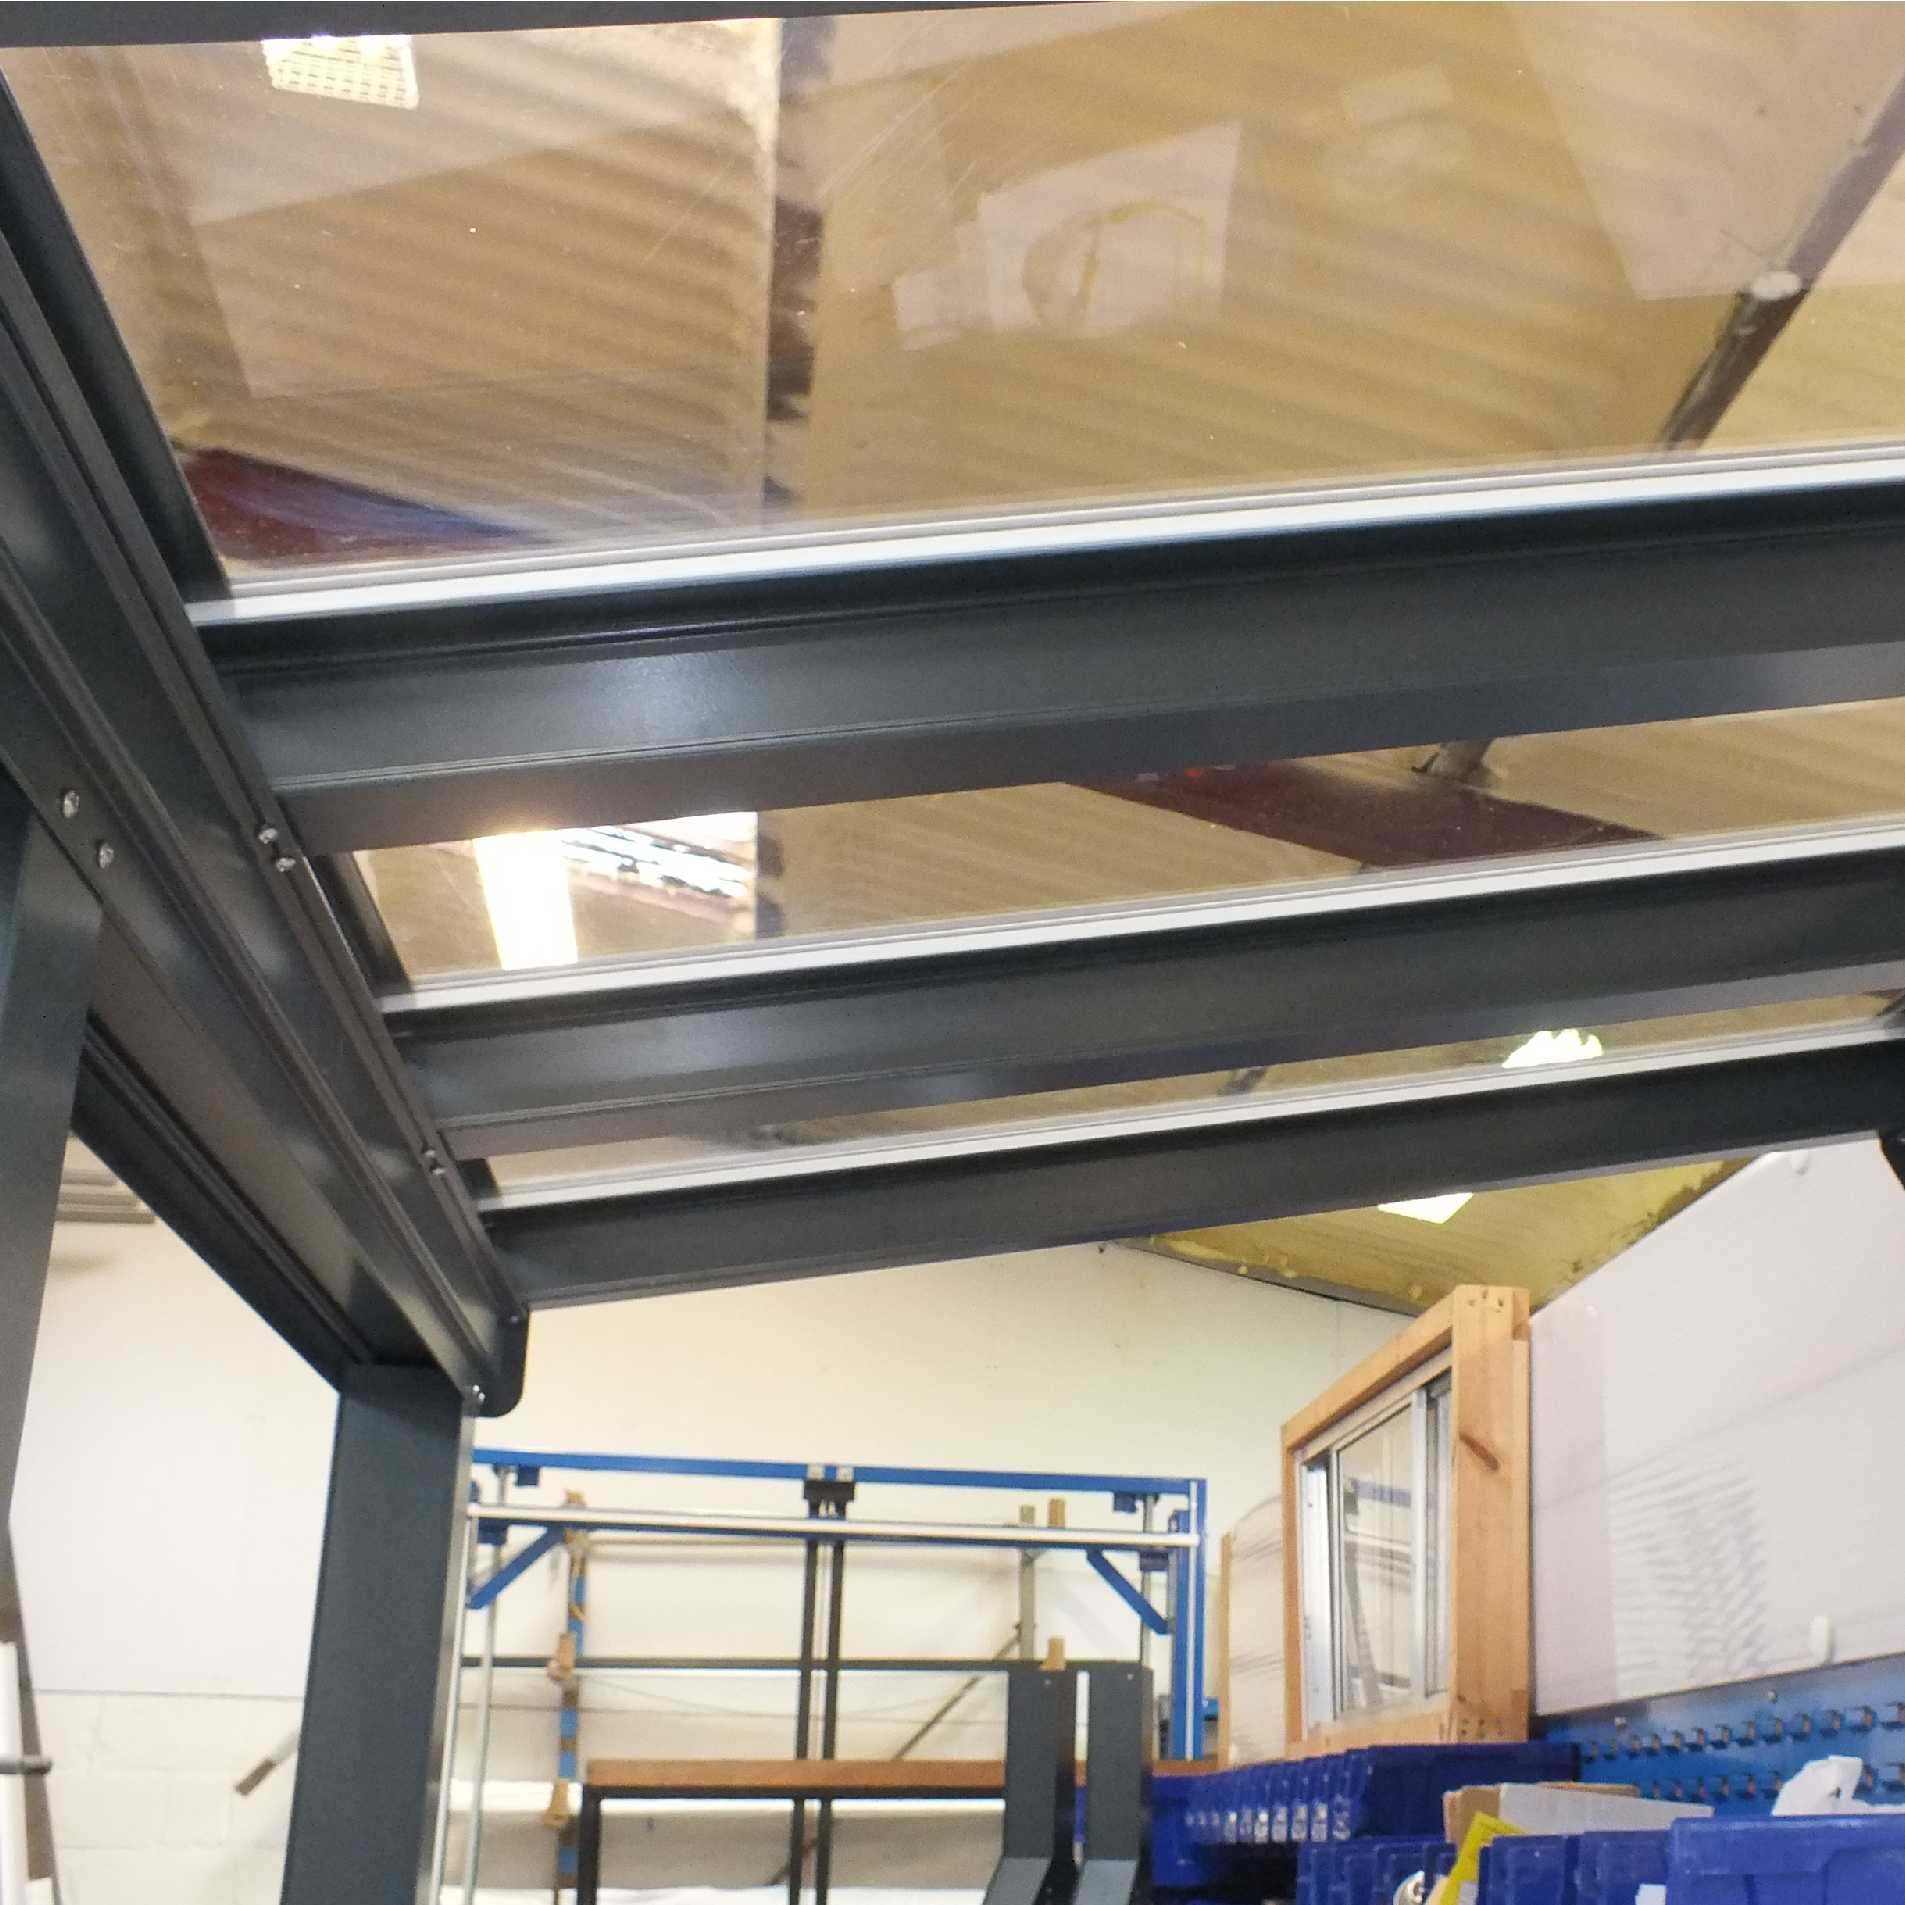 Great deals on Omega Smart Lean-To Canopy, Anthracite Grey, 6mm Glass Clear Plate Polycarbonate Glazing - 9.8m (W) x 2.5m (P), (5) Supporting Posts